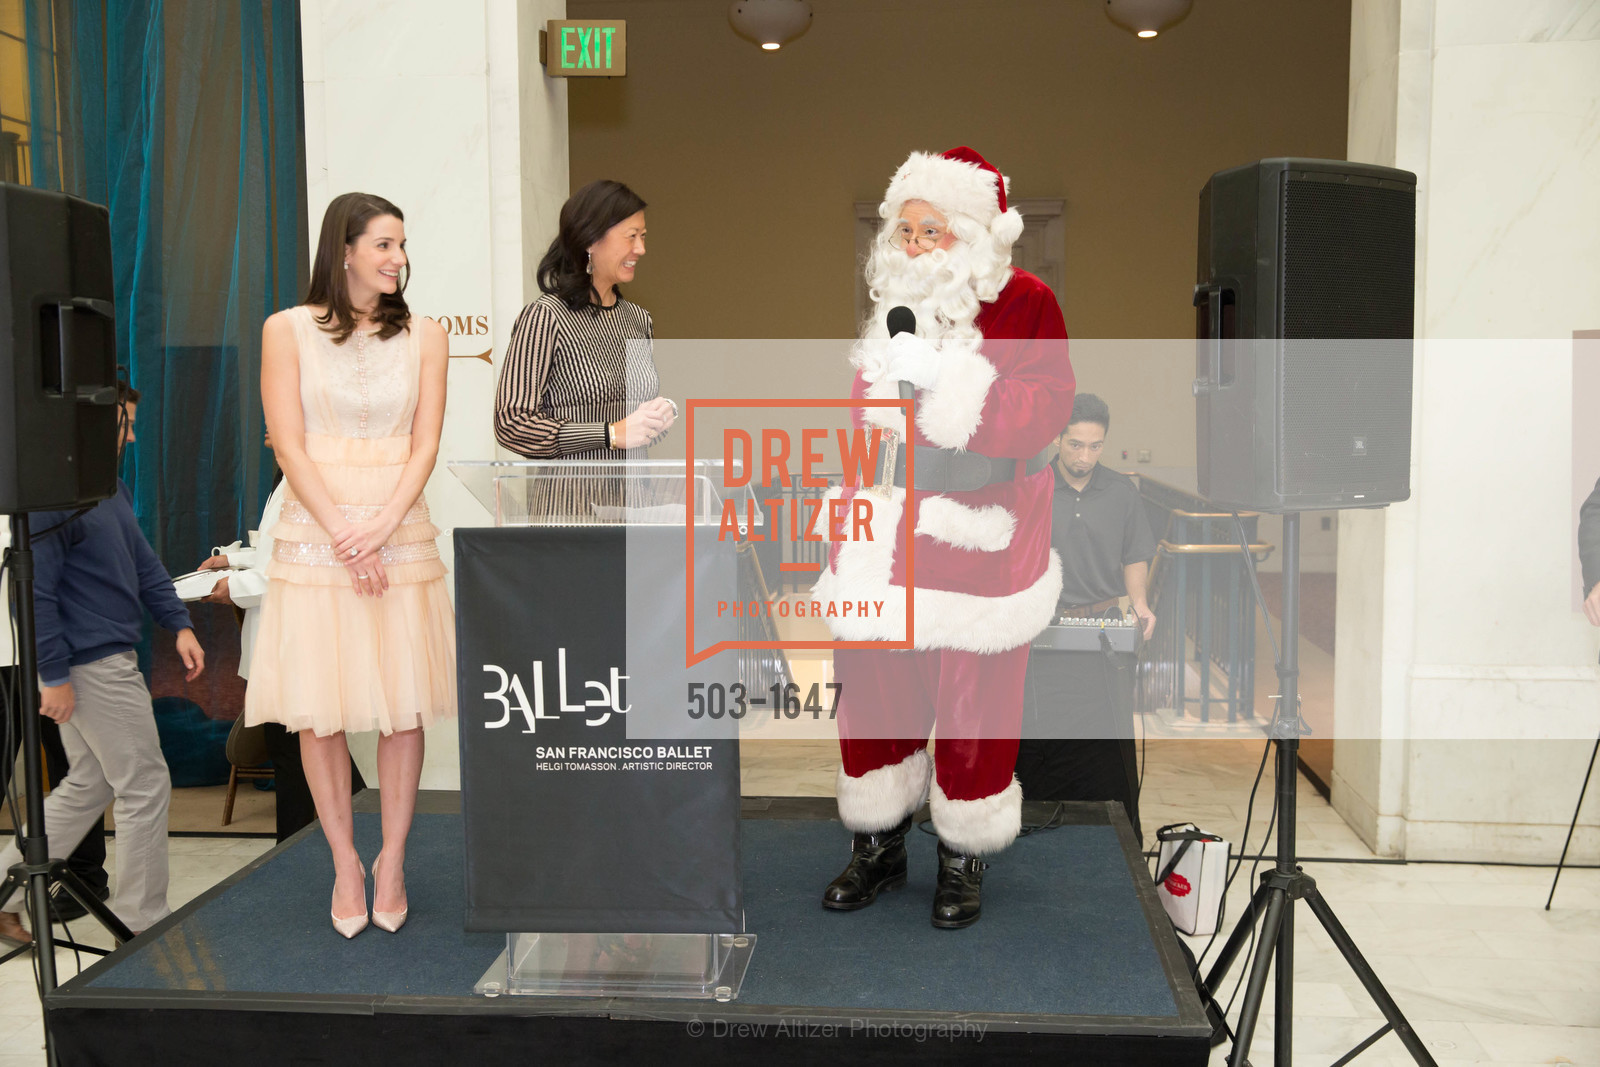 Kelsey Lamond, Christine Leong Connors, SF Ballet's Nutcracker Luncheon, City Hall & War Memorial Opera House. 301 Van Ness Ave, San Francisco, CA 94109, December 11th, 2016